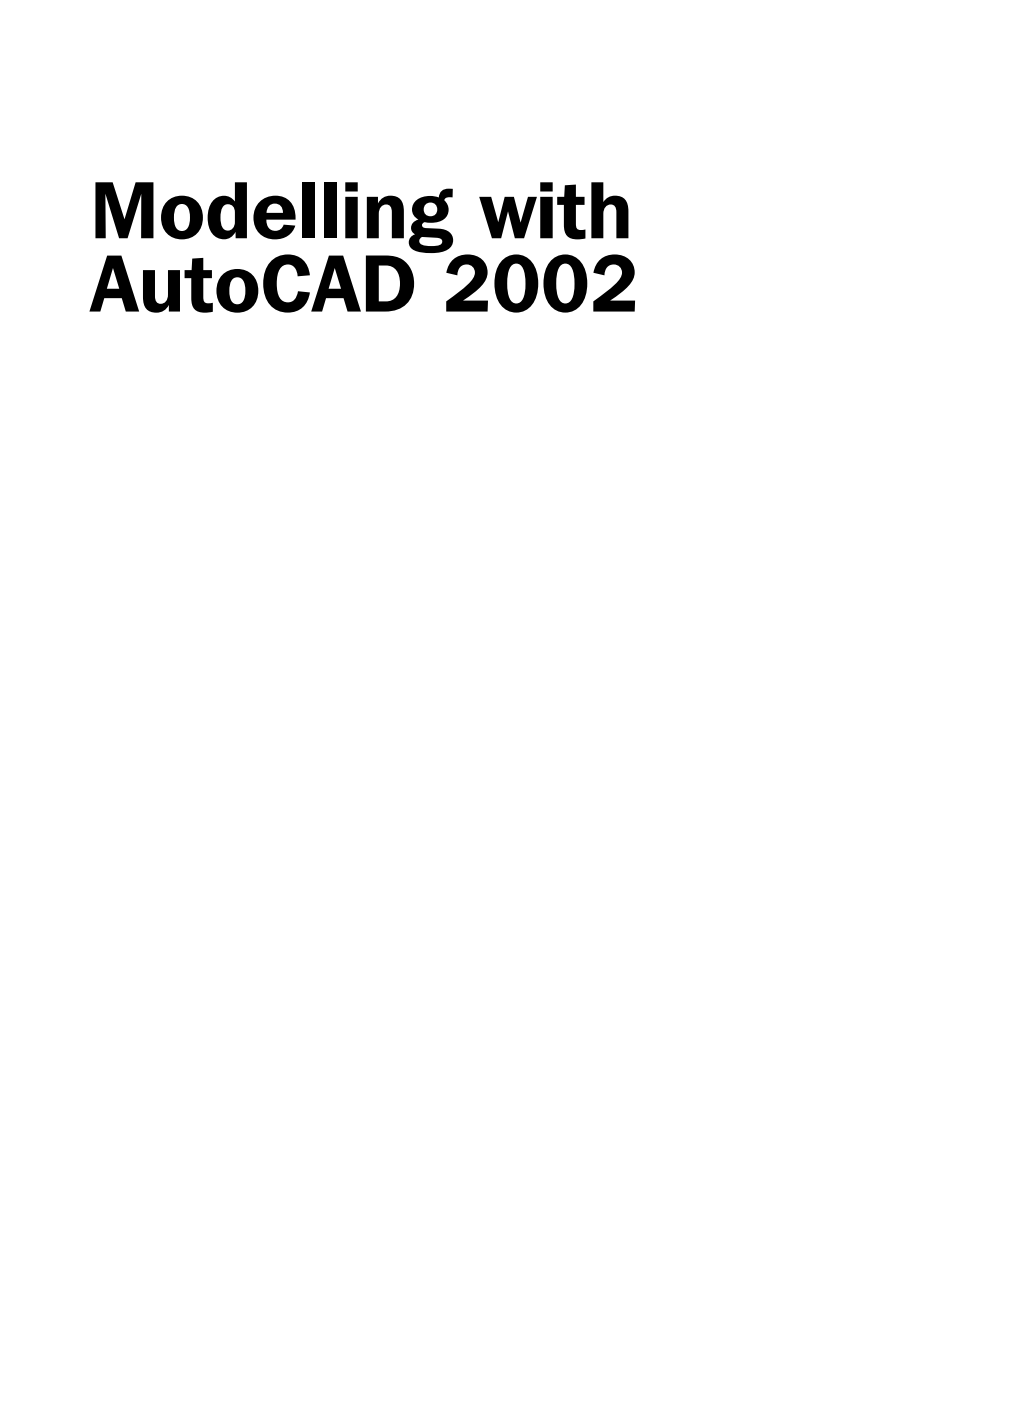 Modelling with AutoCAD 2002.Other titles from Bob McFarlane